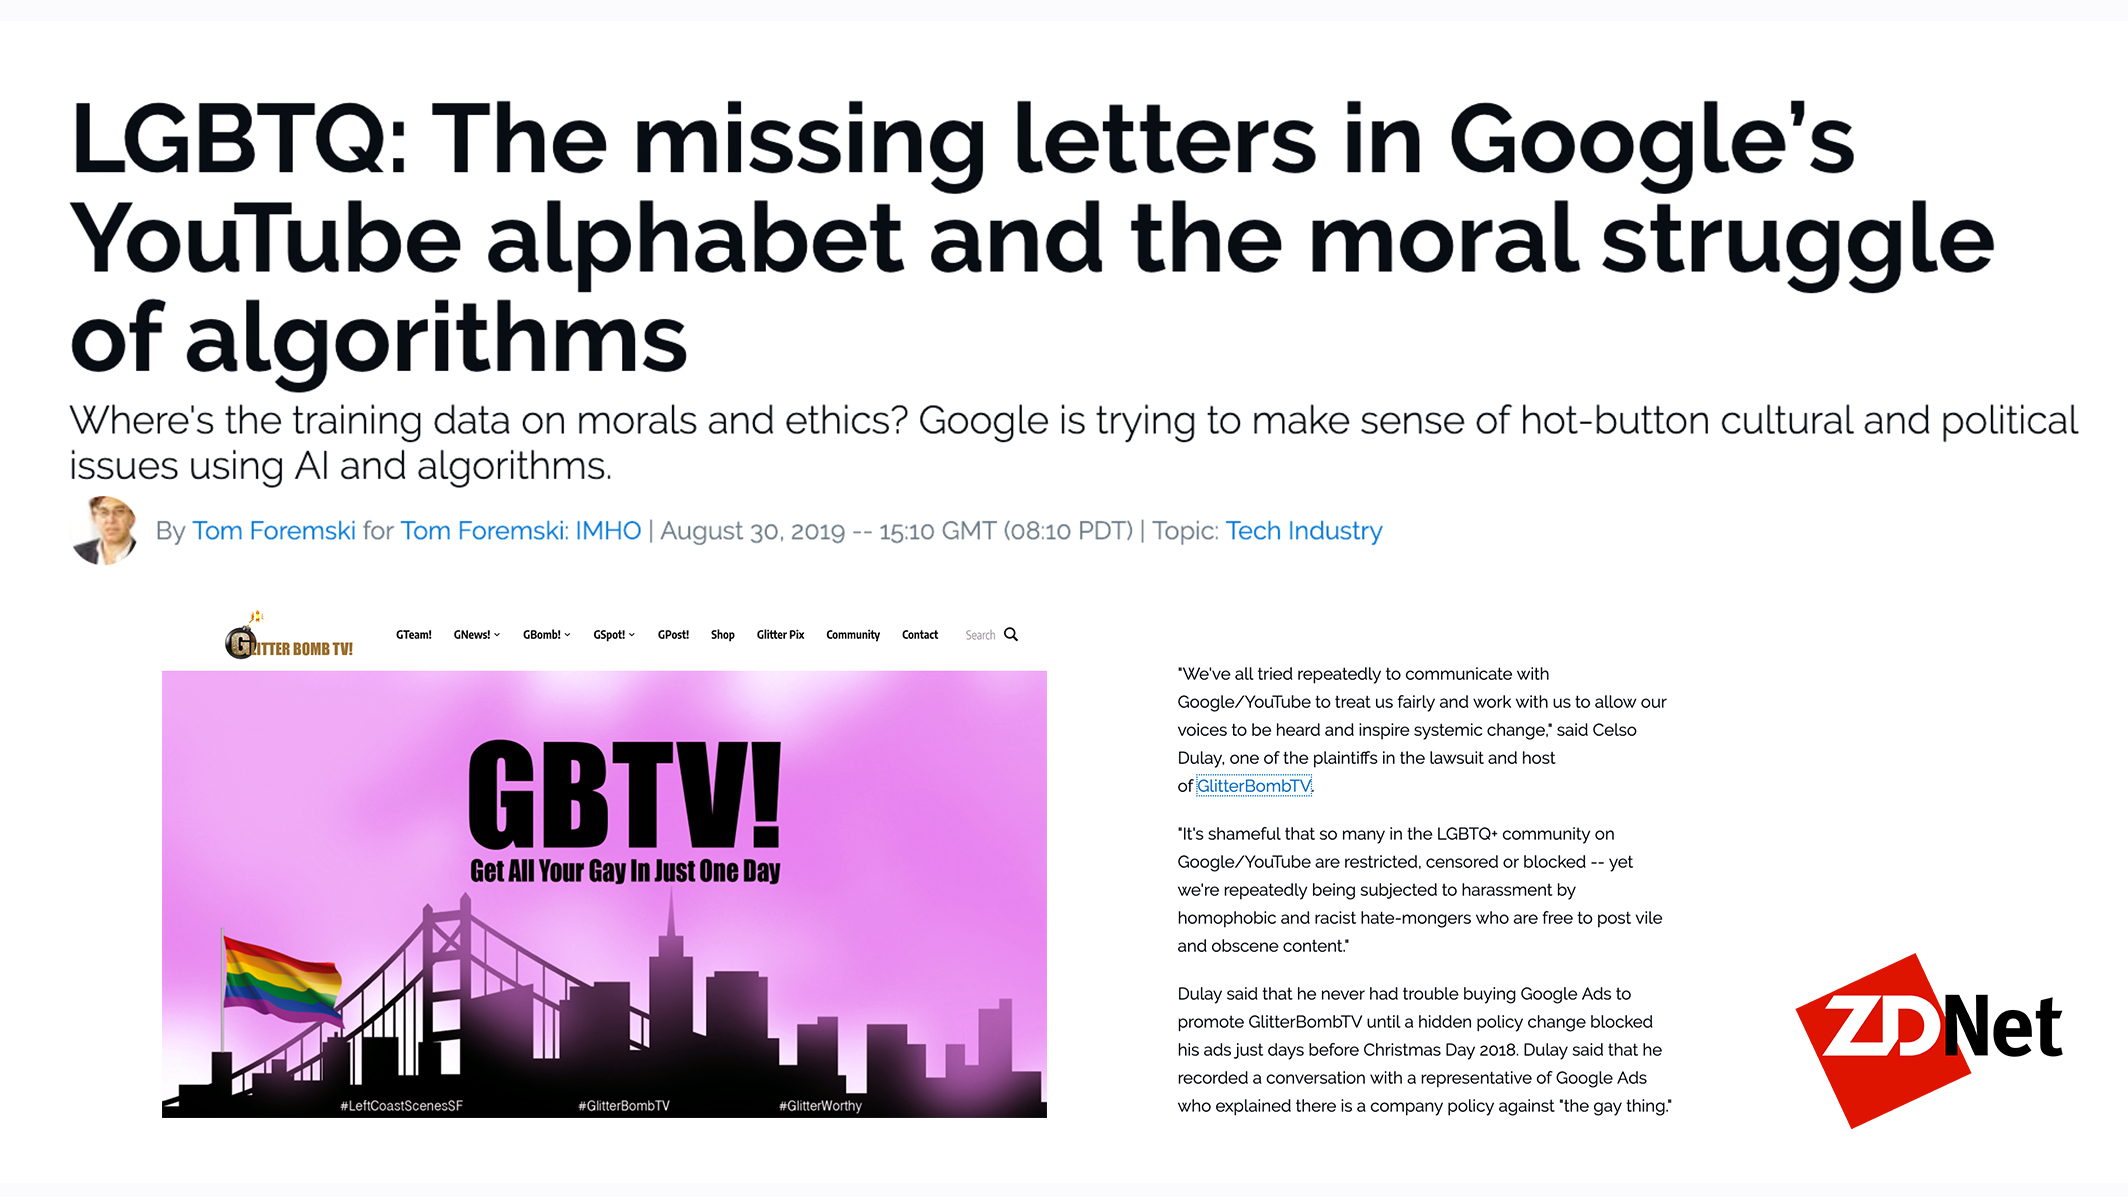 Tom's story on LGBTQs vs. Google